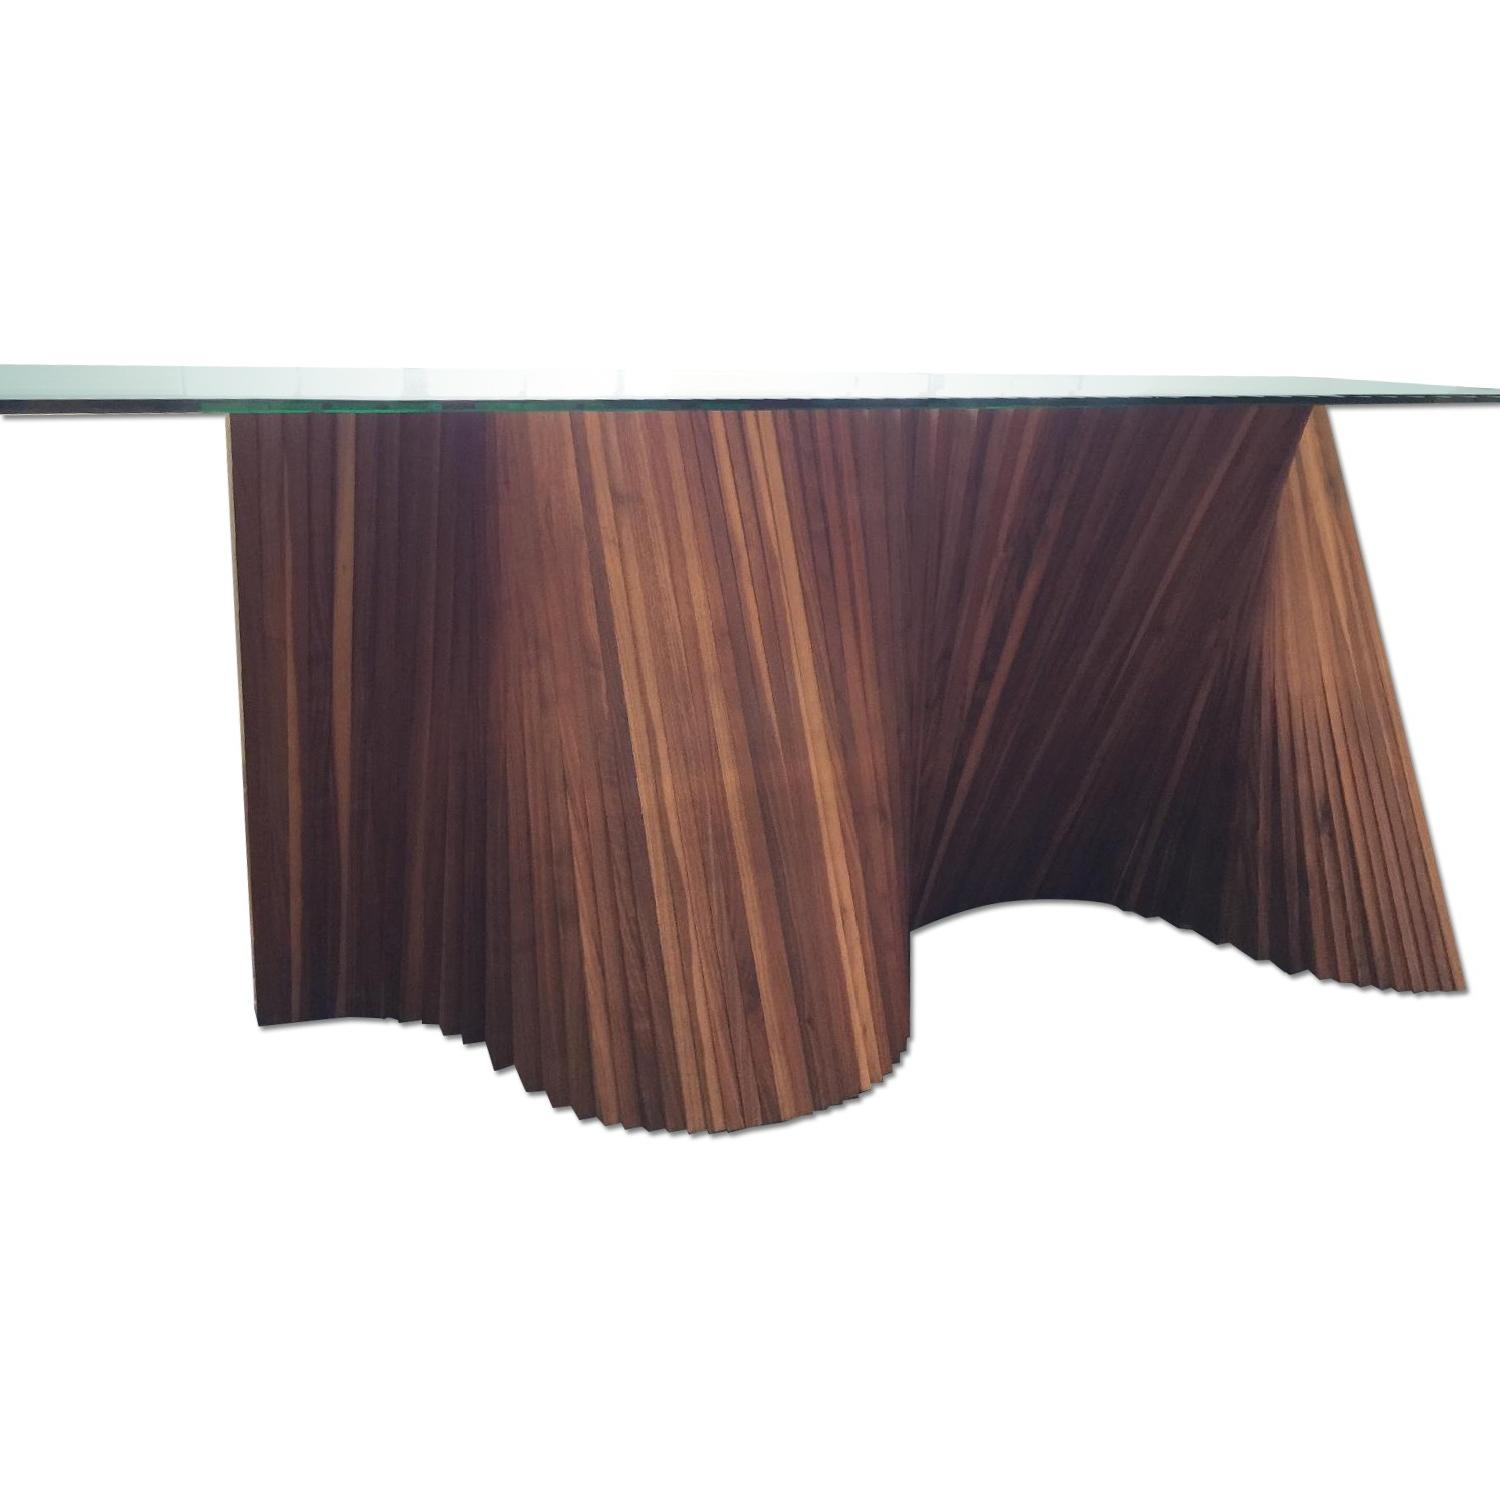 Kenneth Cobonpue Wave Dining Table - image-0